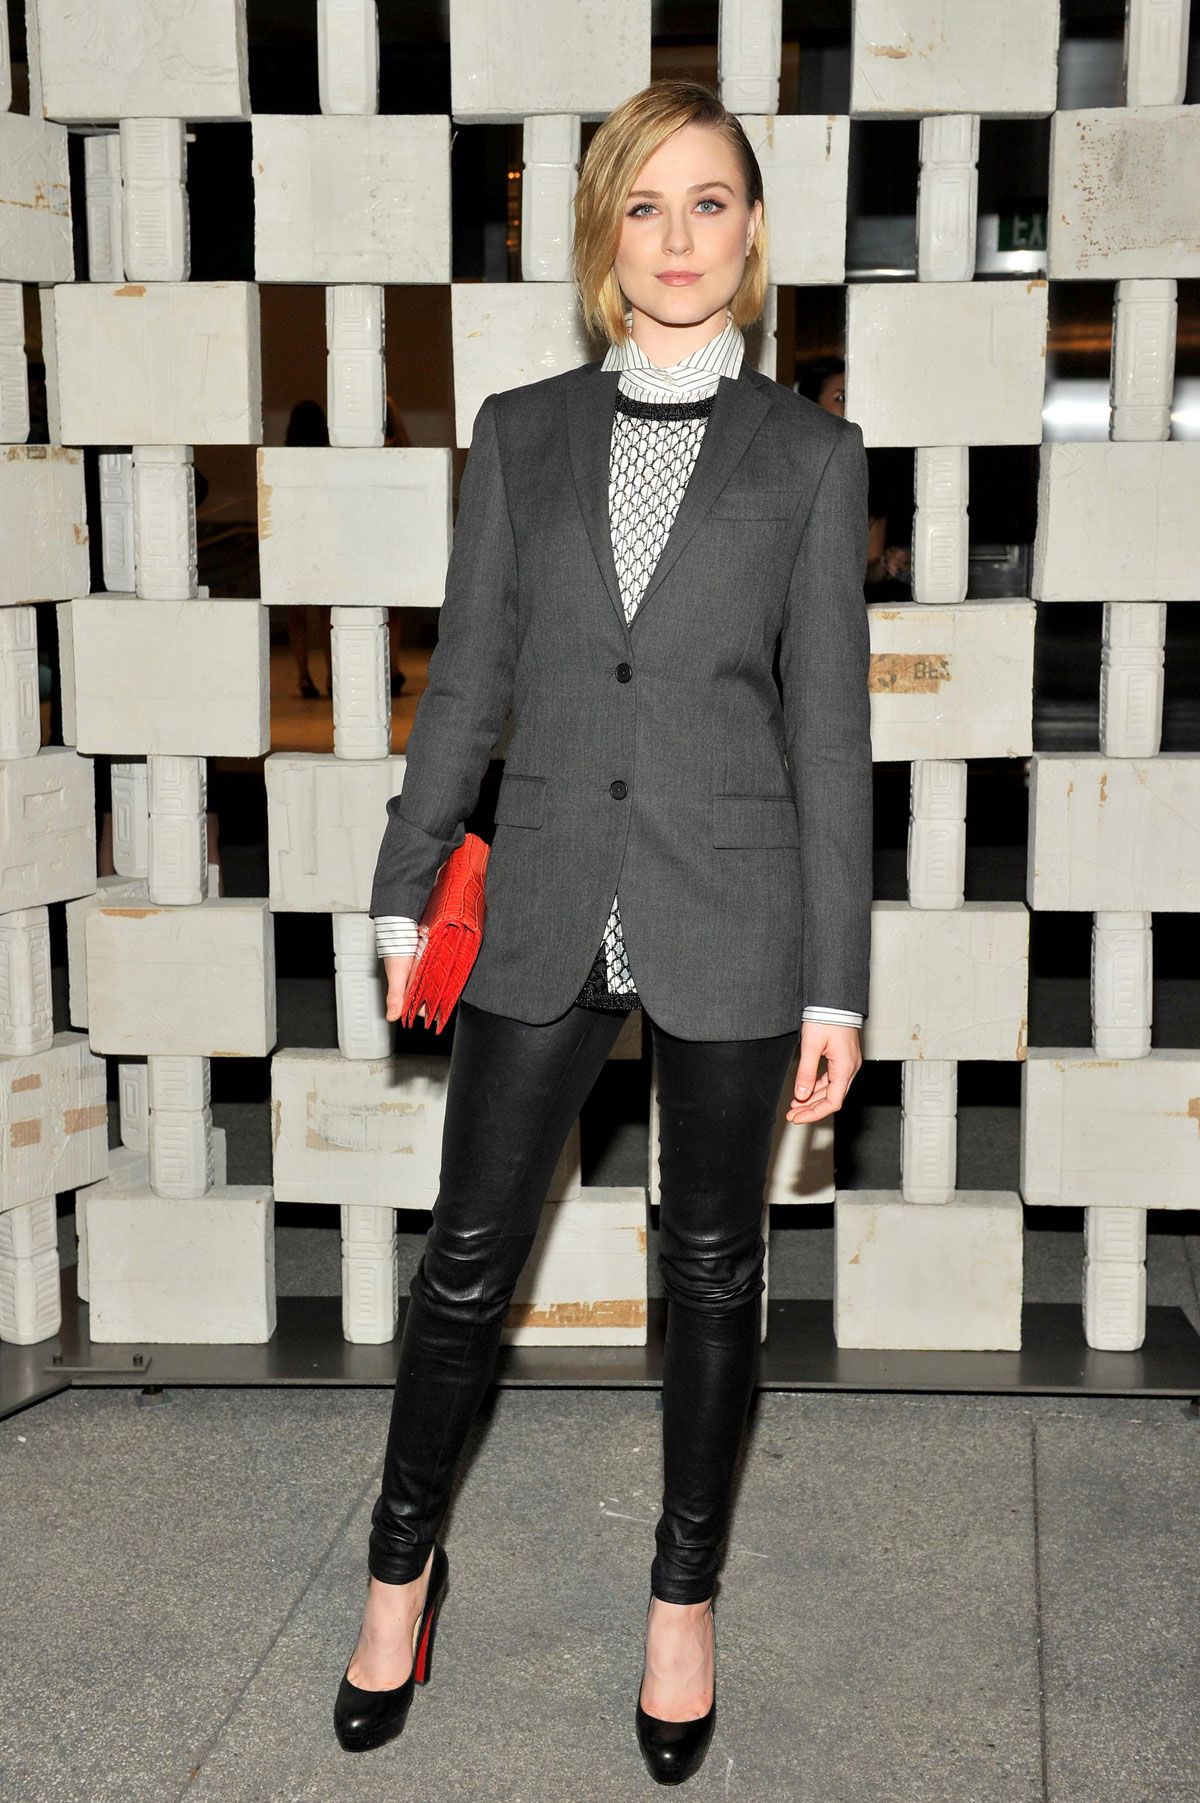 Evan Rachel Wood attends Hammer Museum's 12th annual Gala